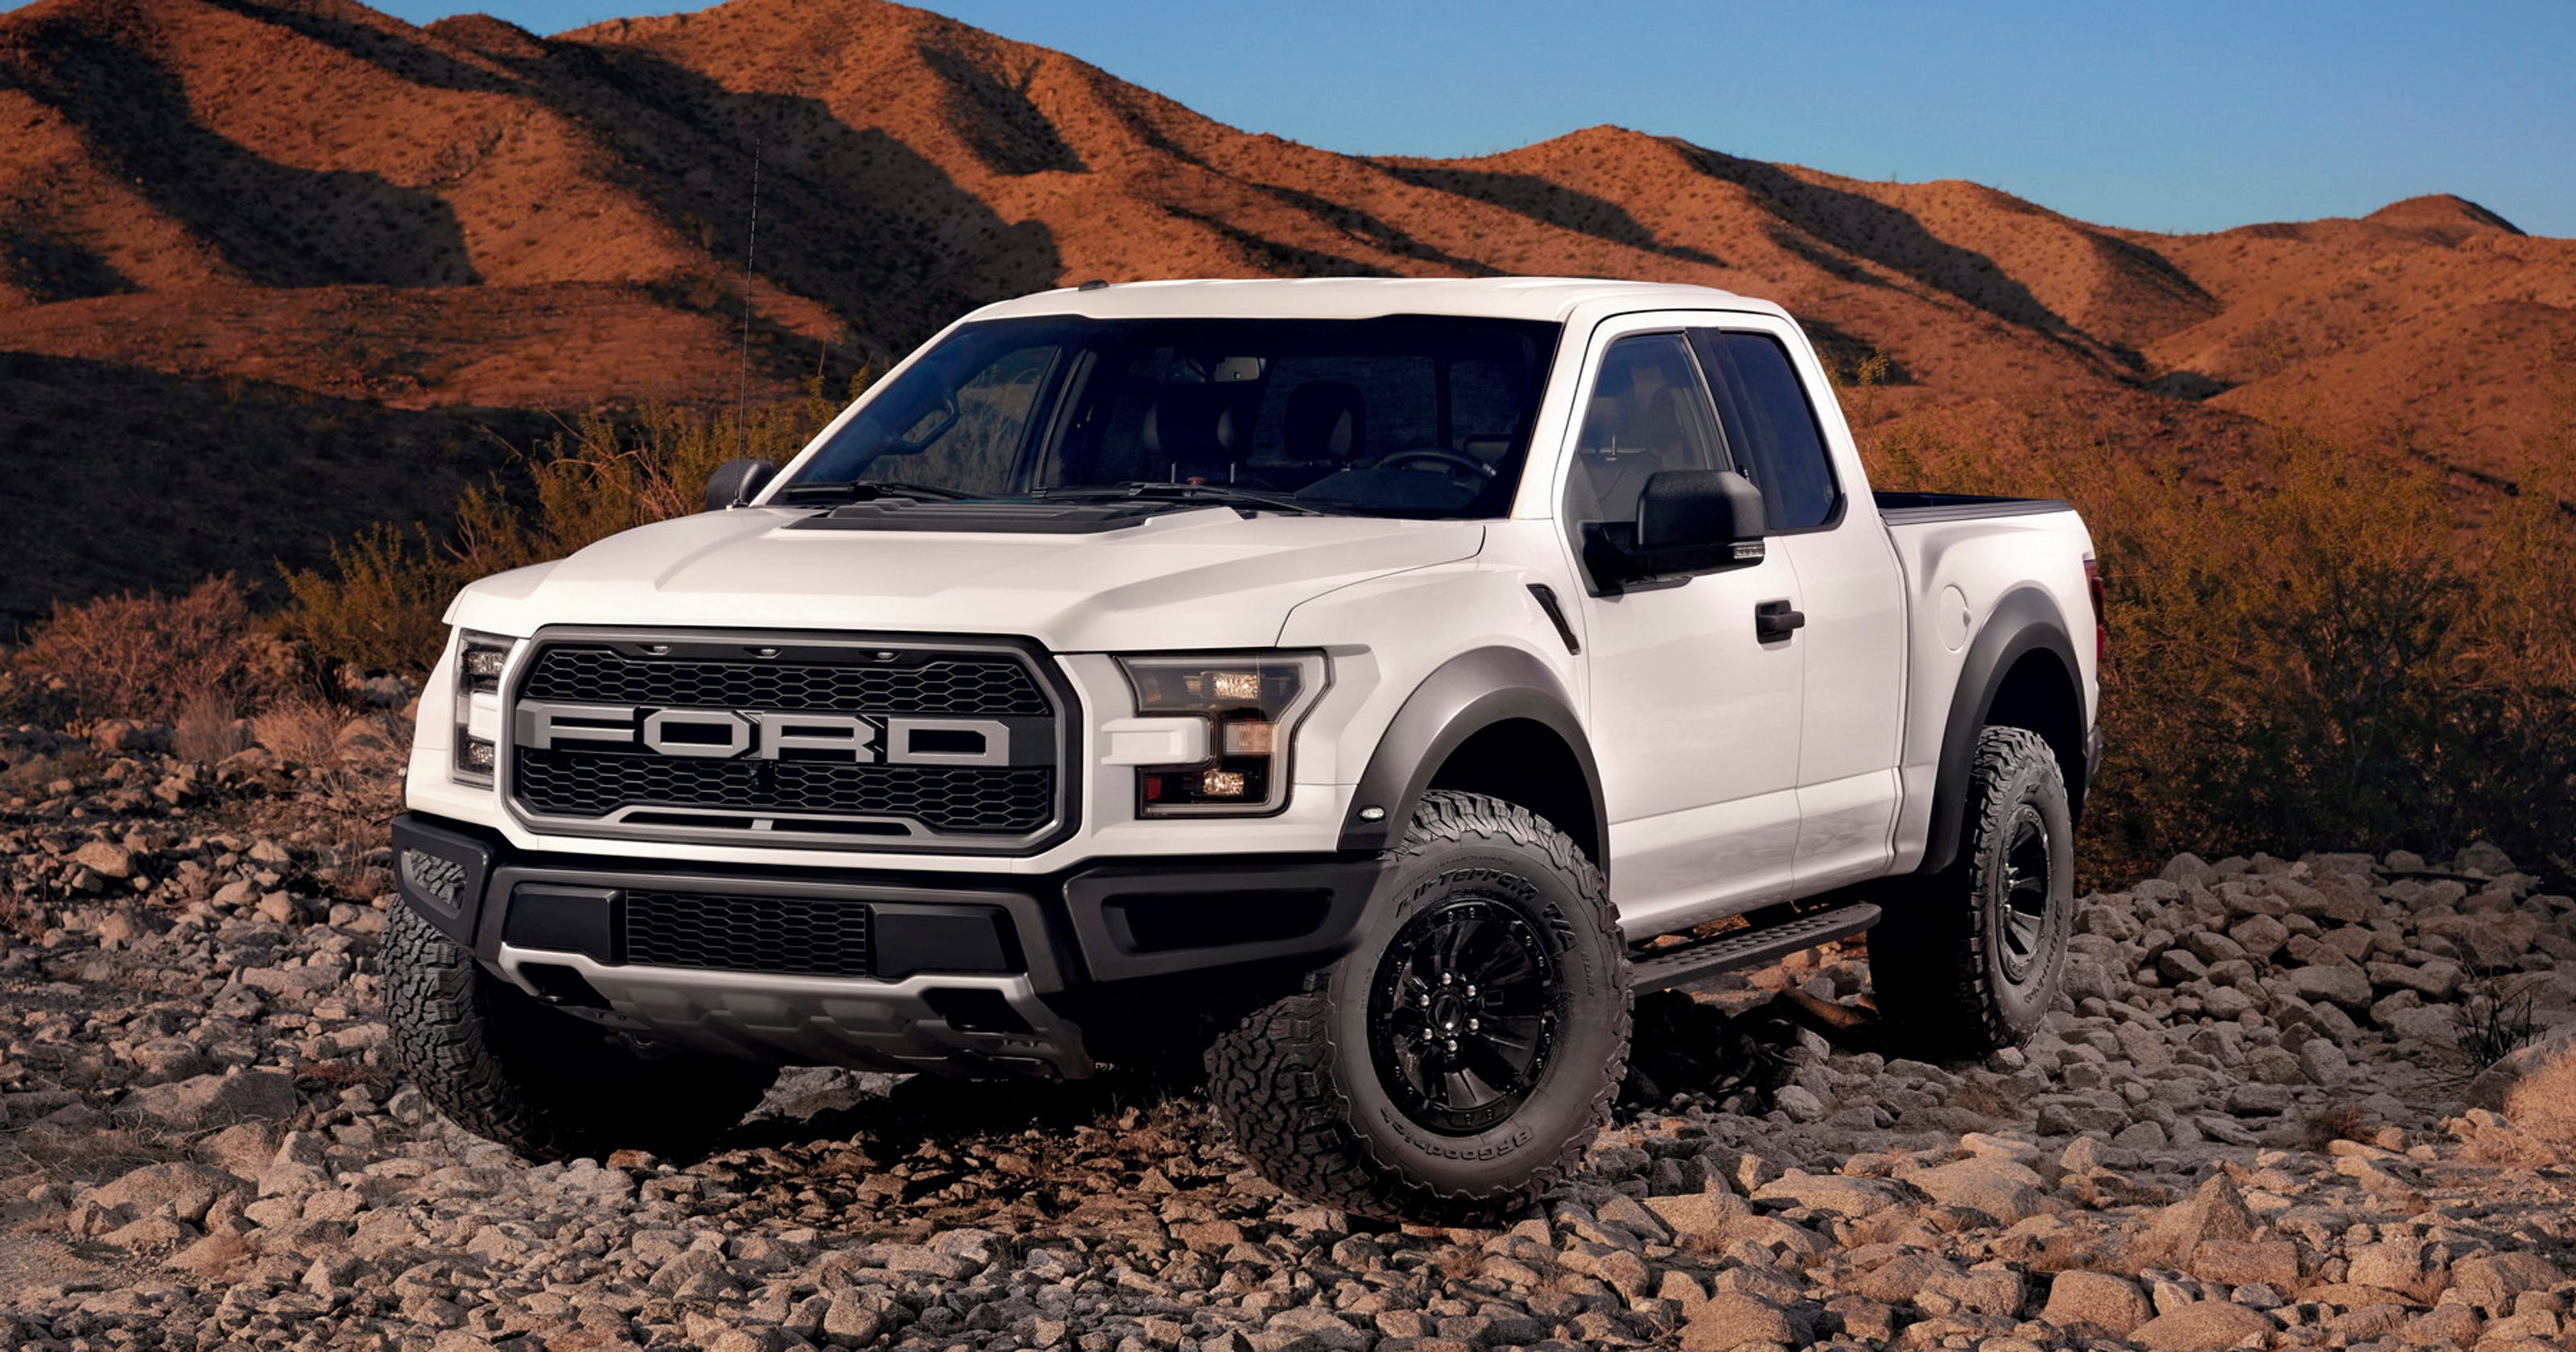 2017 ford f 150 raptor pickup truck is smart tough capable